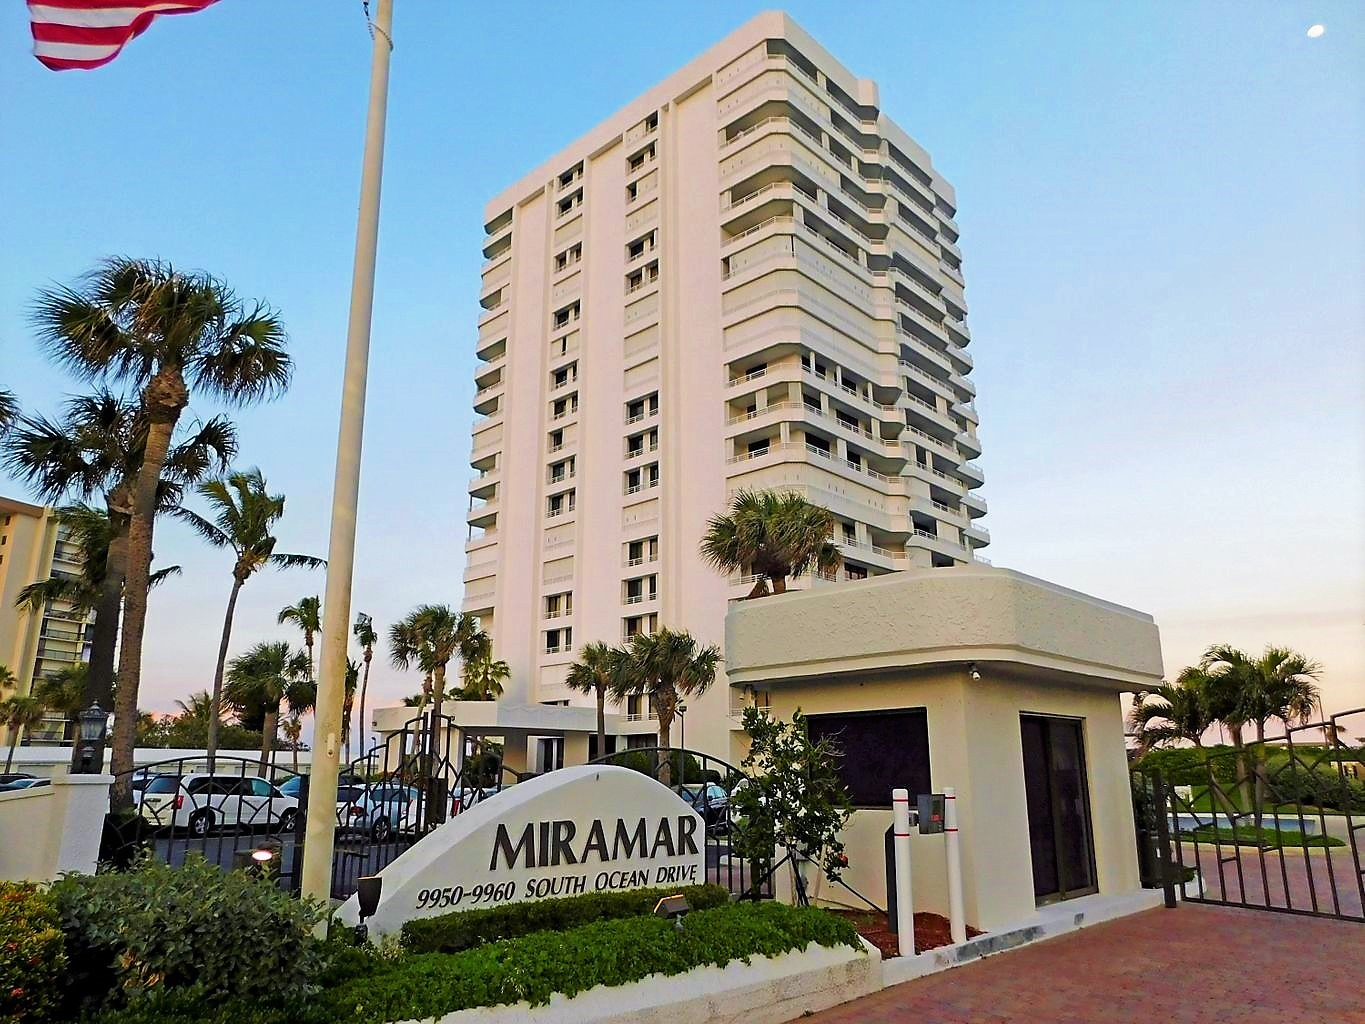 Miramar Royale Hutchinson Island Condos for Sale